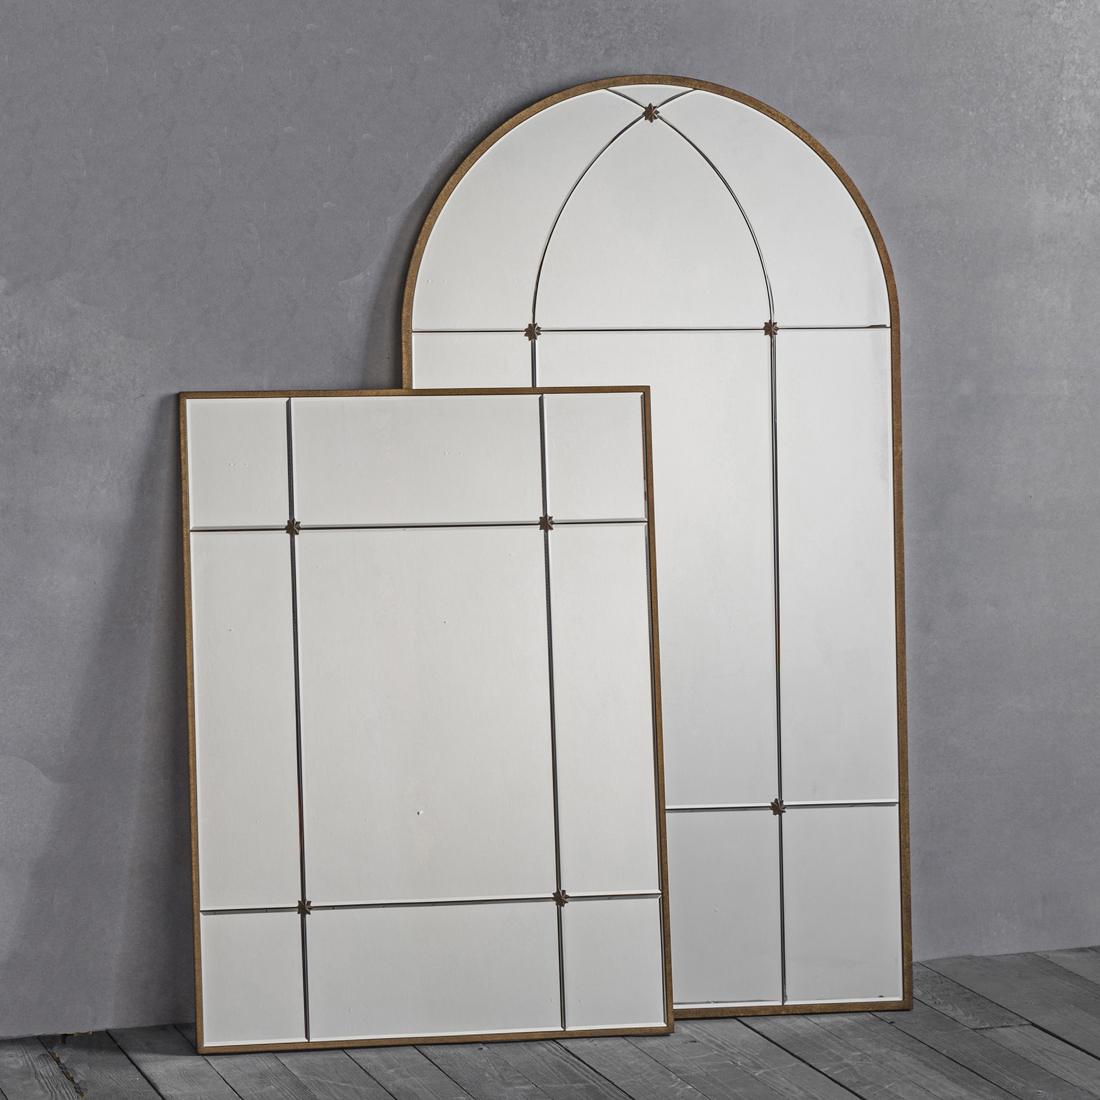 Gold Arch Wall Mirrors Inside Recent Gold Window Wall Mirror – Arch Or Rectangle (View 6 of 20)